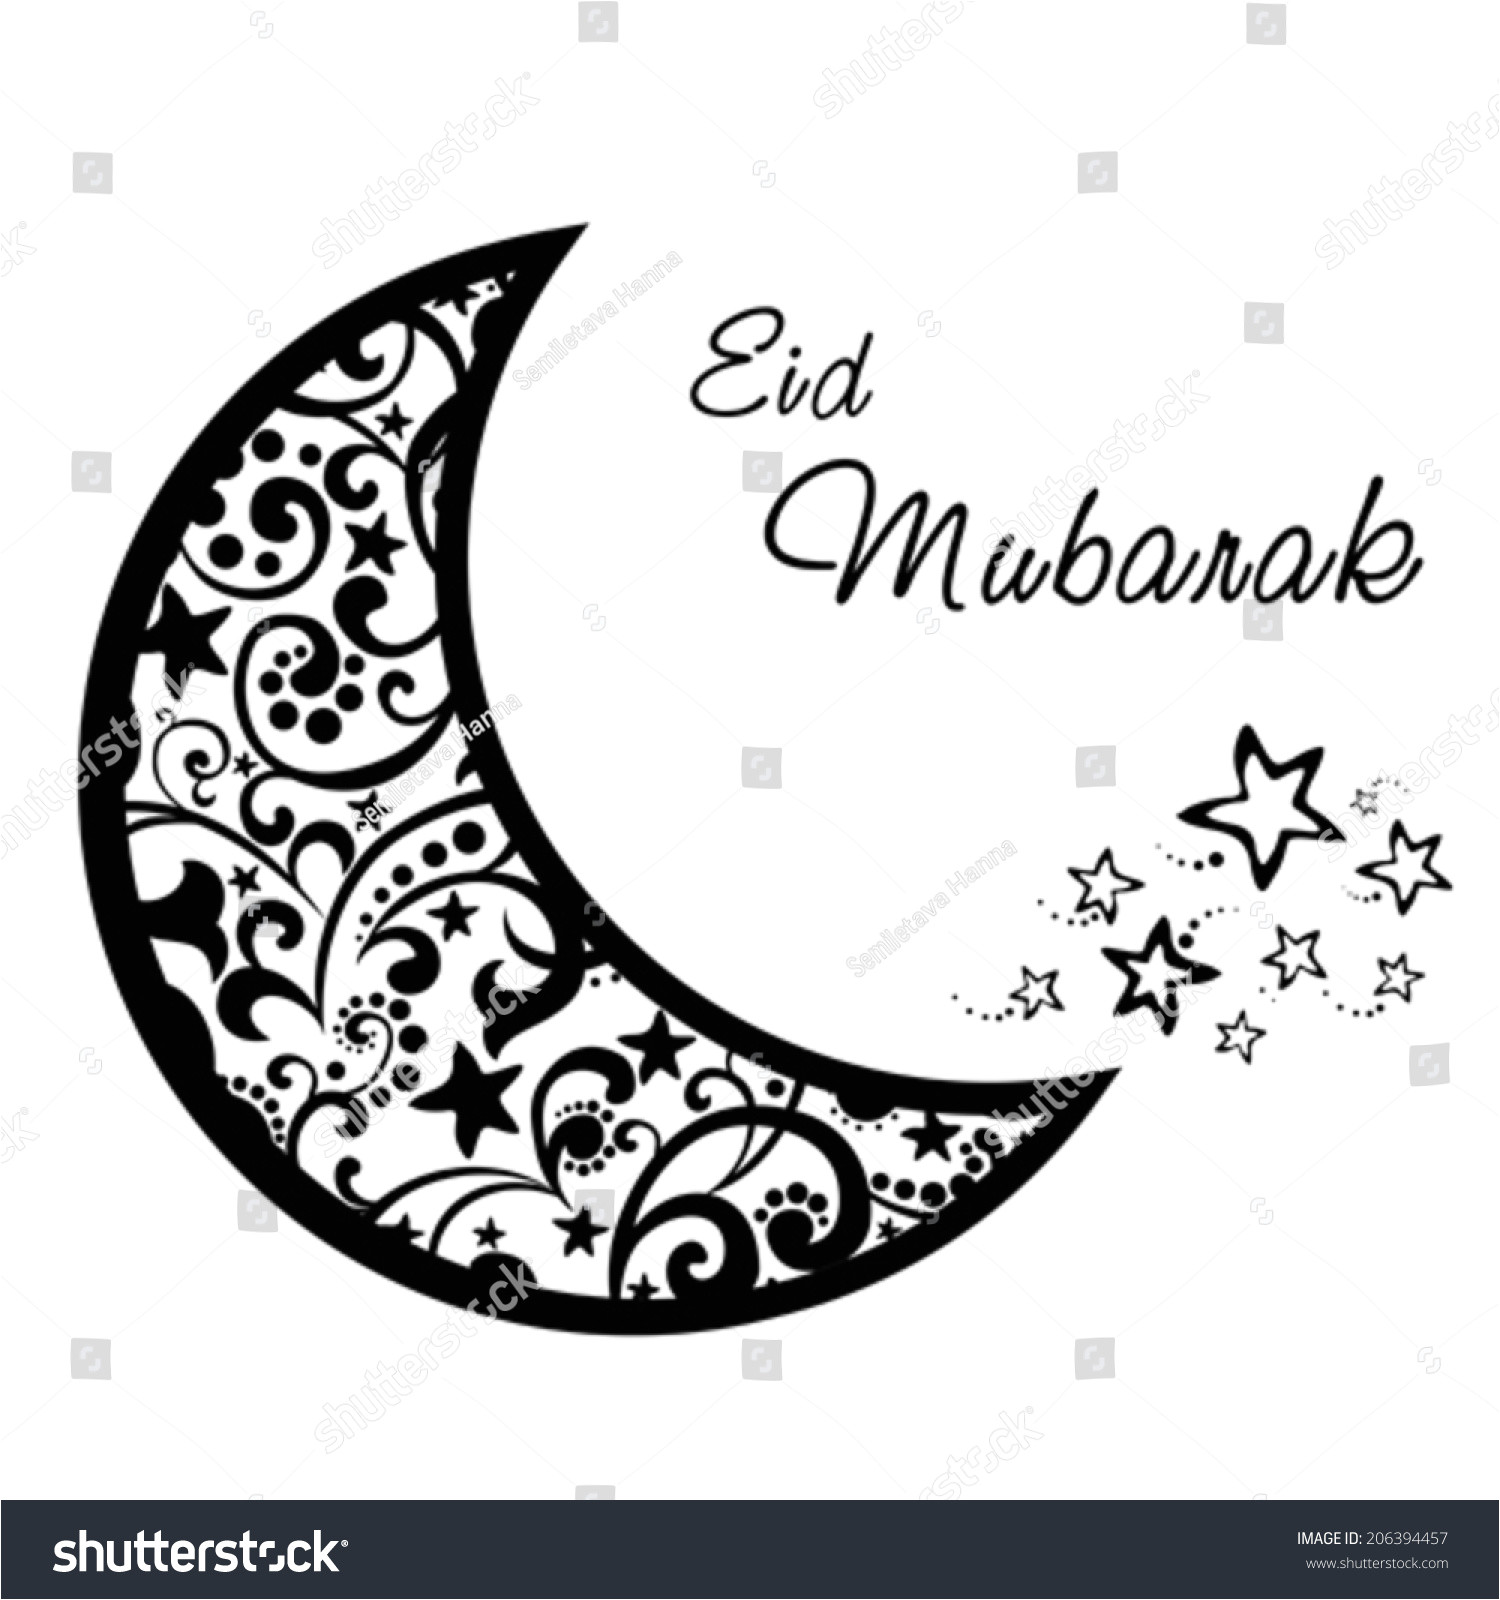 stock vector a greeting card template eid mubarak white background with isolated icon for ramadan kareem